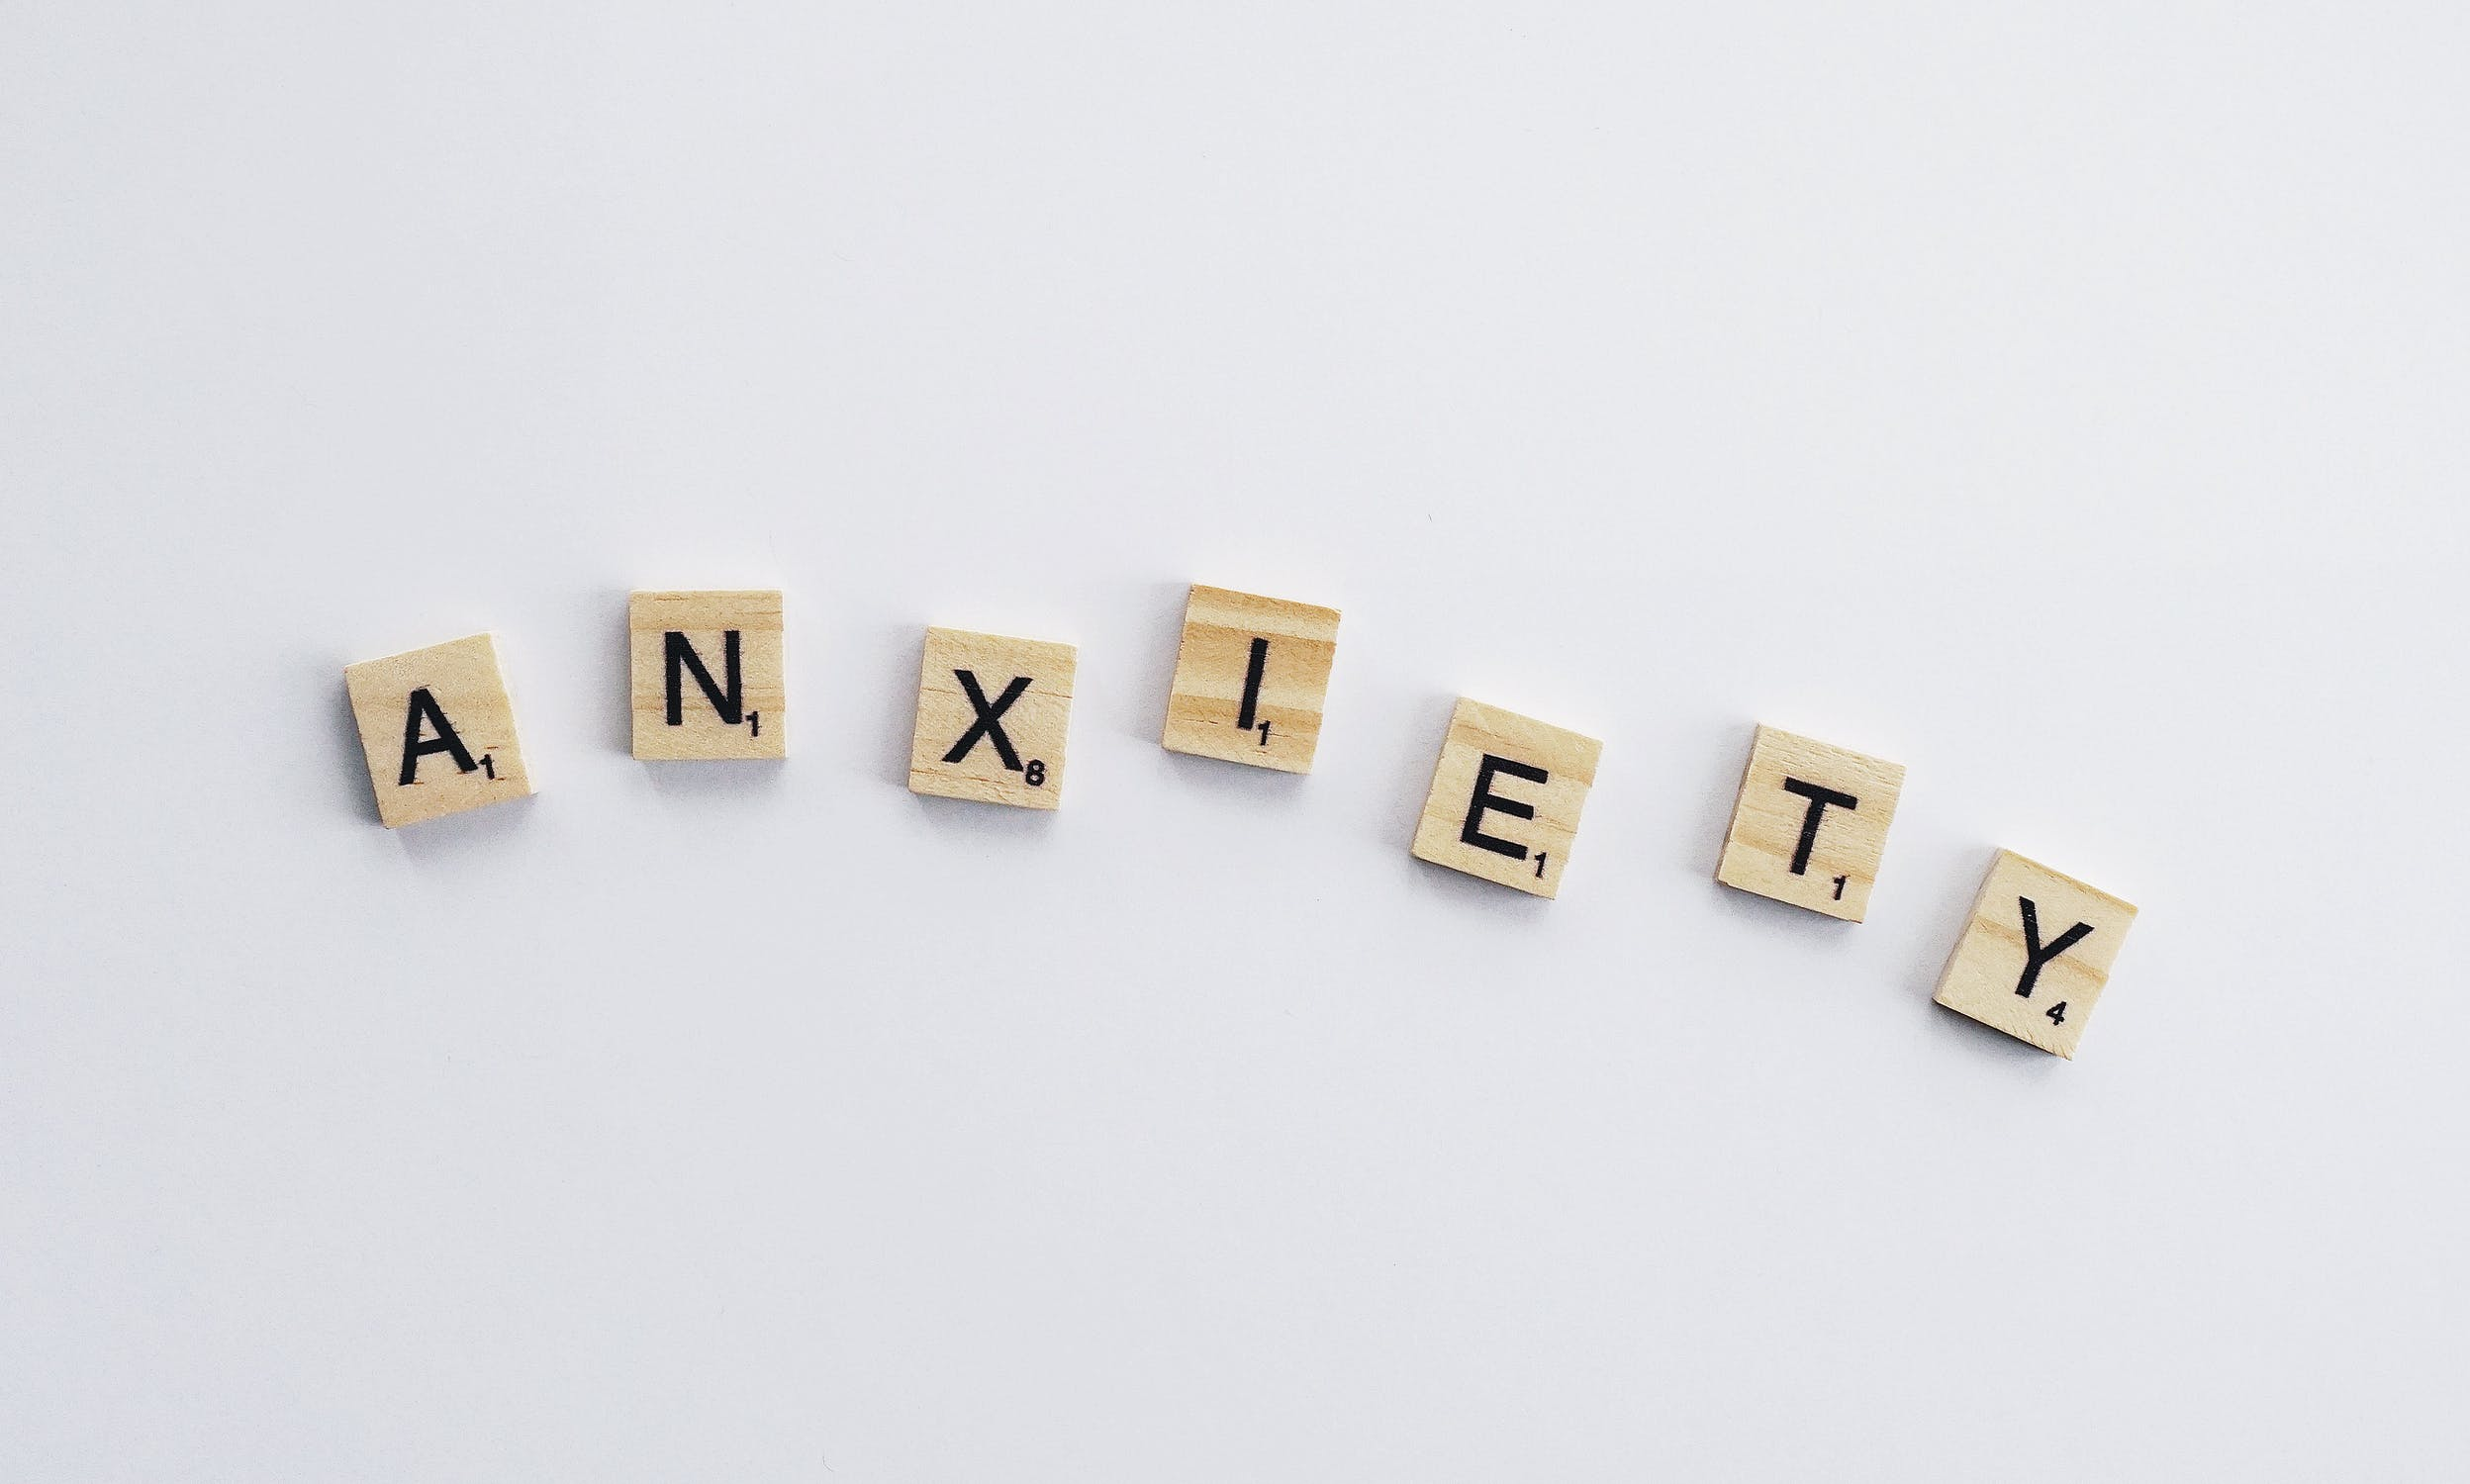 Scrabble letters spelling out 'Anxiety'